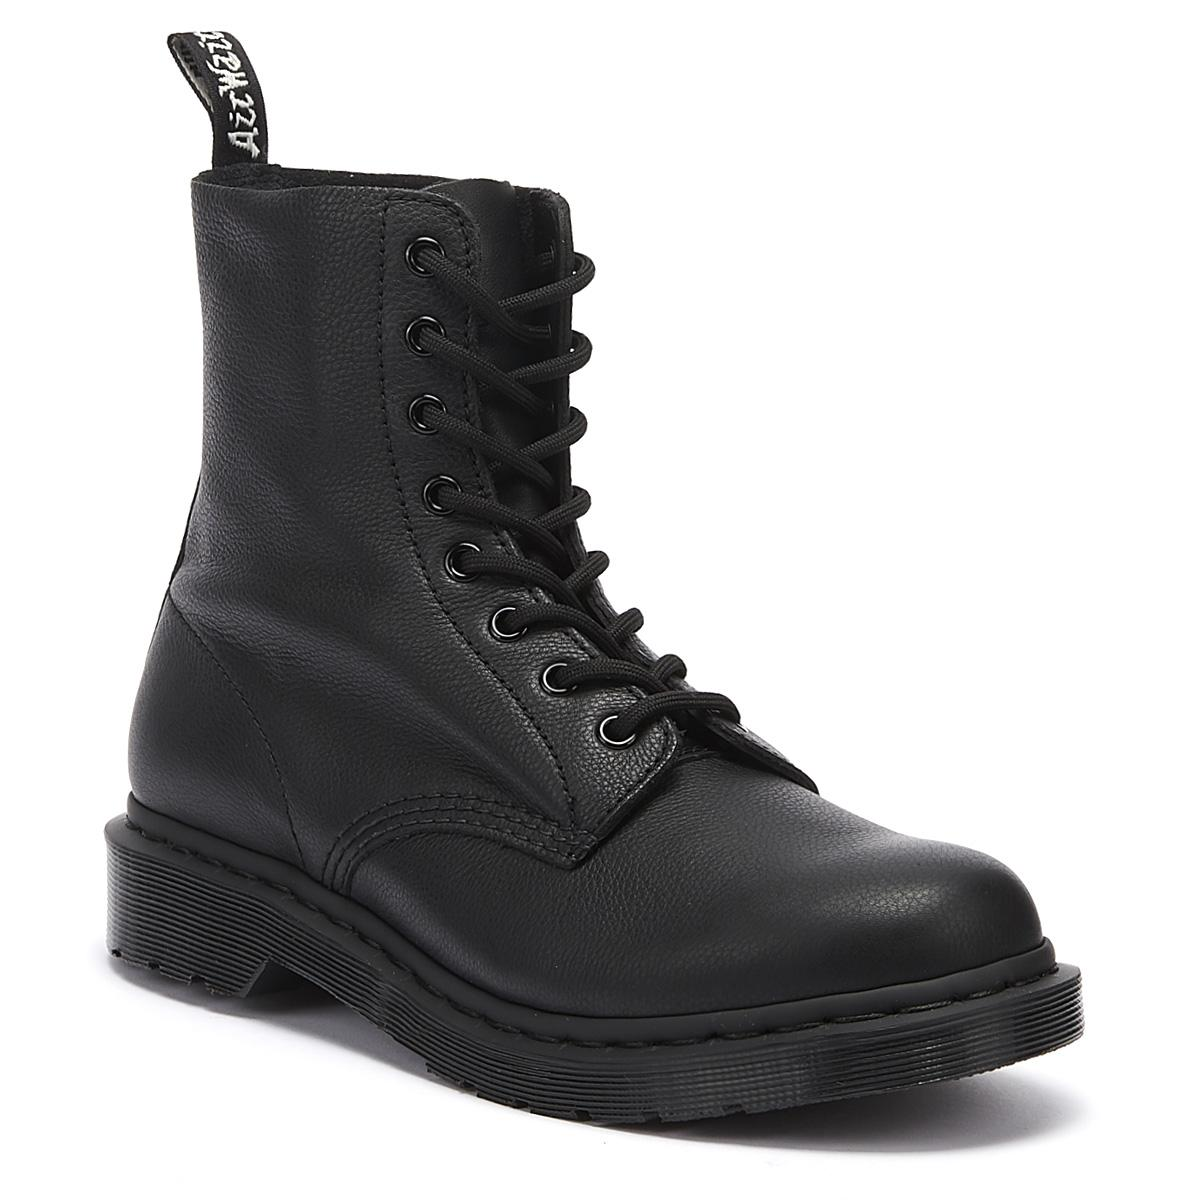 89643812b2a7 Lyst - Dr. Martens Dr. Martens 1460 Pascal Virginia Womens Mono ...